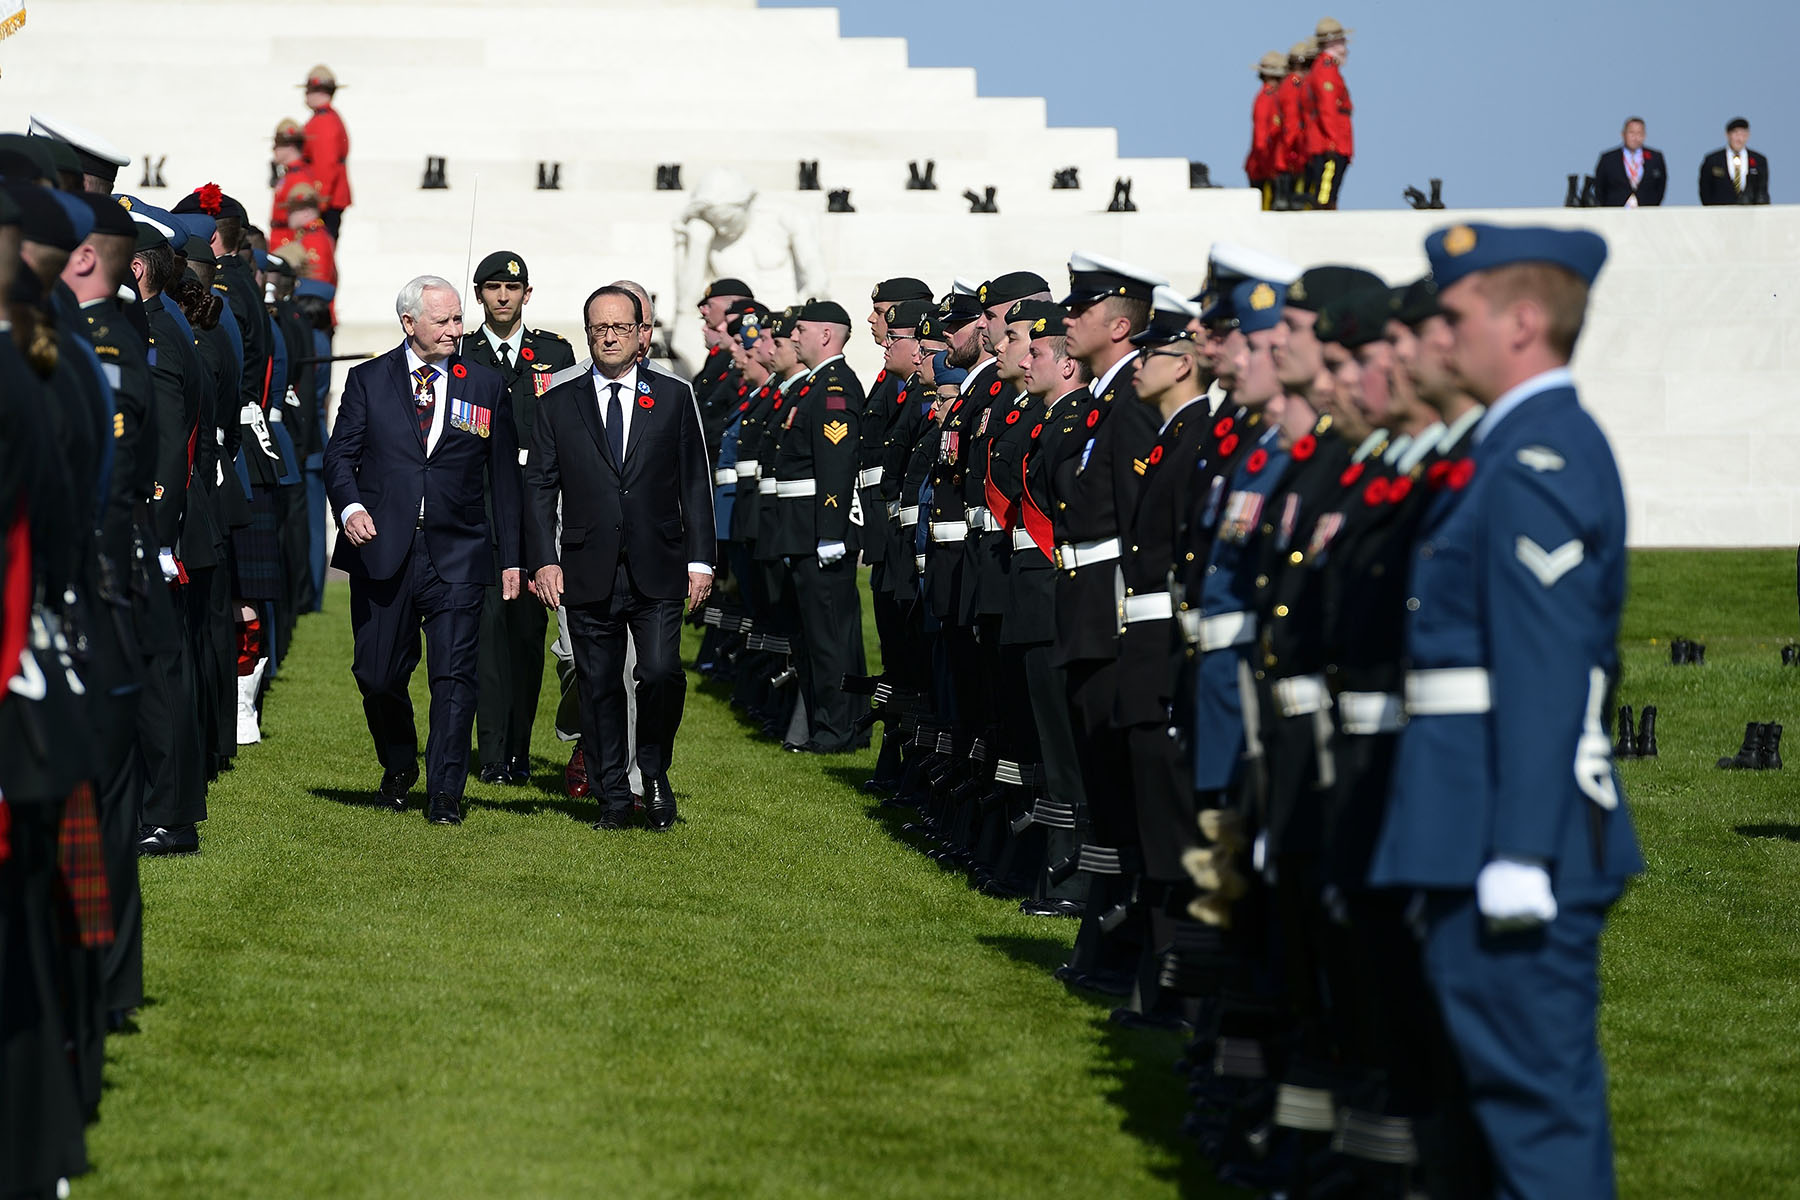 The Governor General, The Prince of Wales and the President of the French Republic reviewed the Canadian Armed Forces Contingent, made up of soldiers from the Regiments that hold the Battle of Arras, Vimy and Hill 70 Battle Honours.